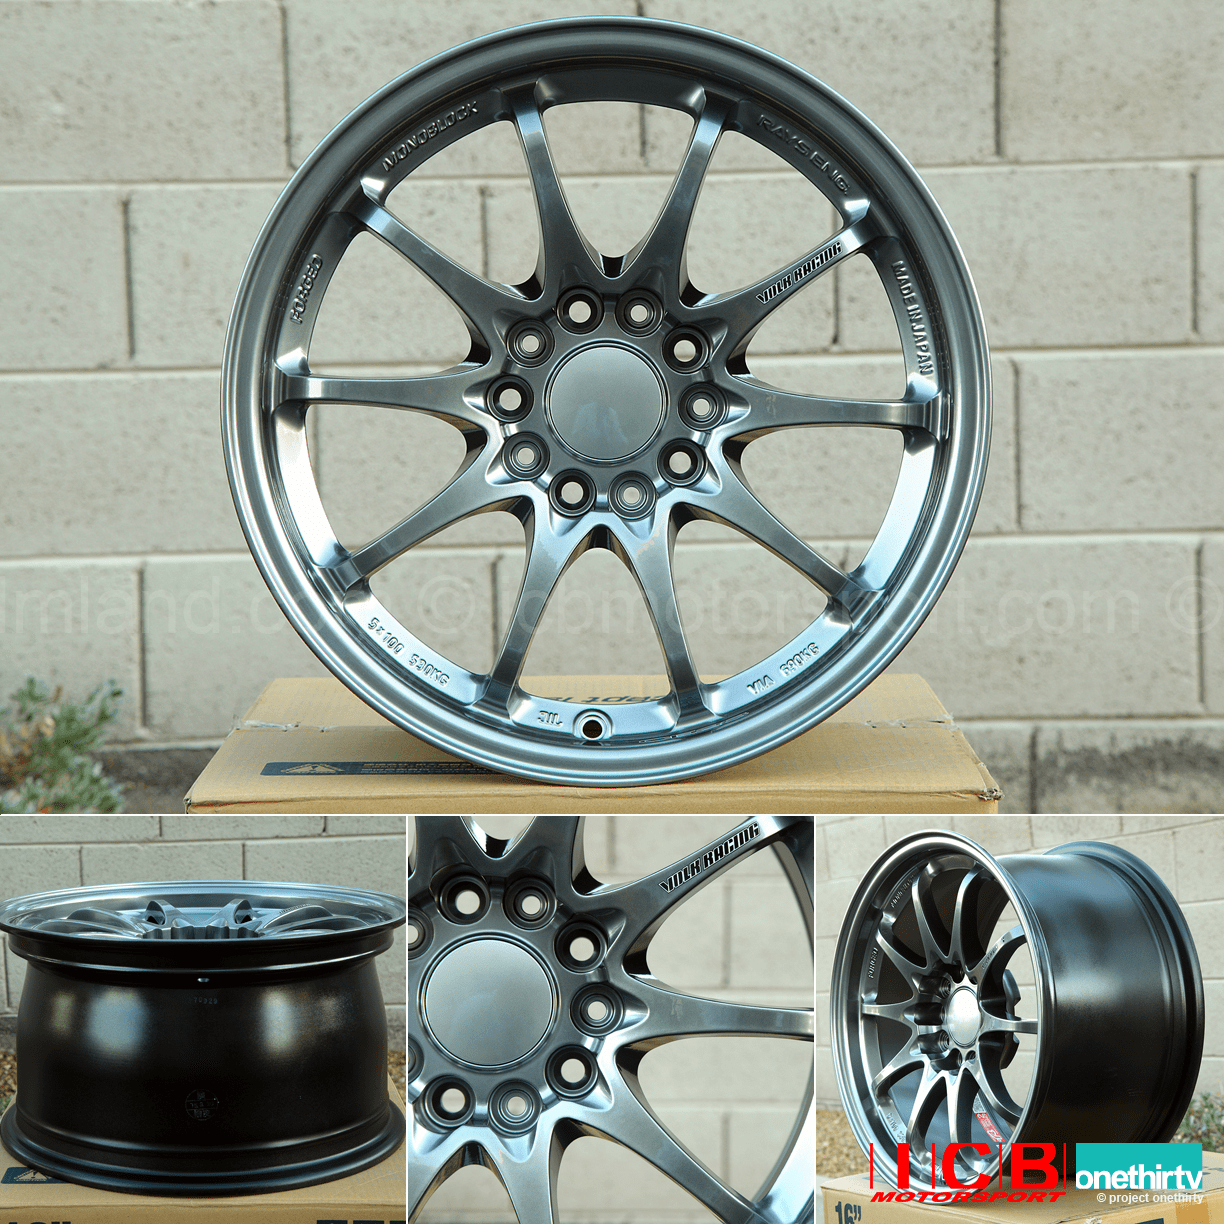 Rays Volk Racing CE28N Wheels 16X8.5 +30 Offset Front 16X8 +28 Offset Rear Formula Silver Concave Sold